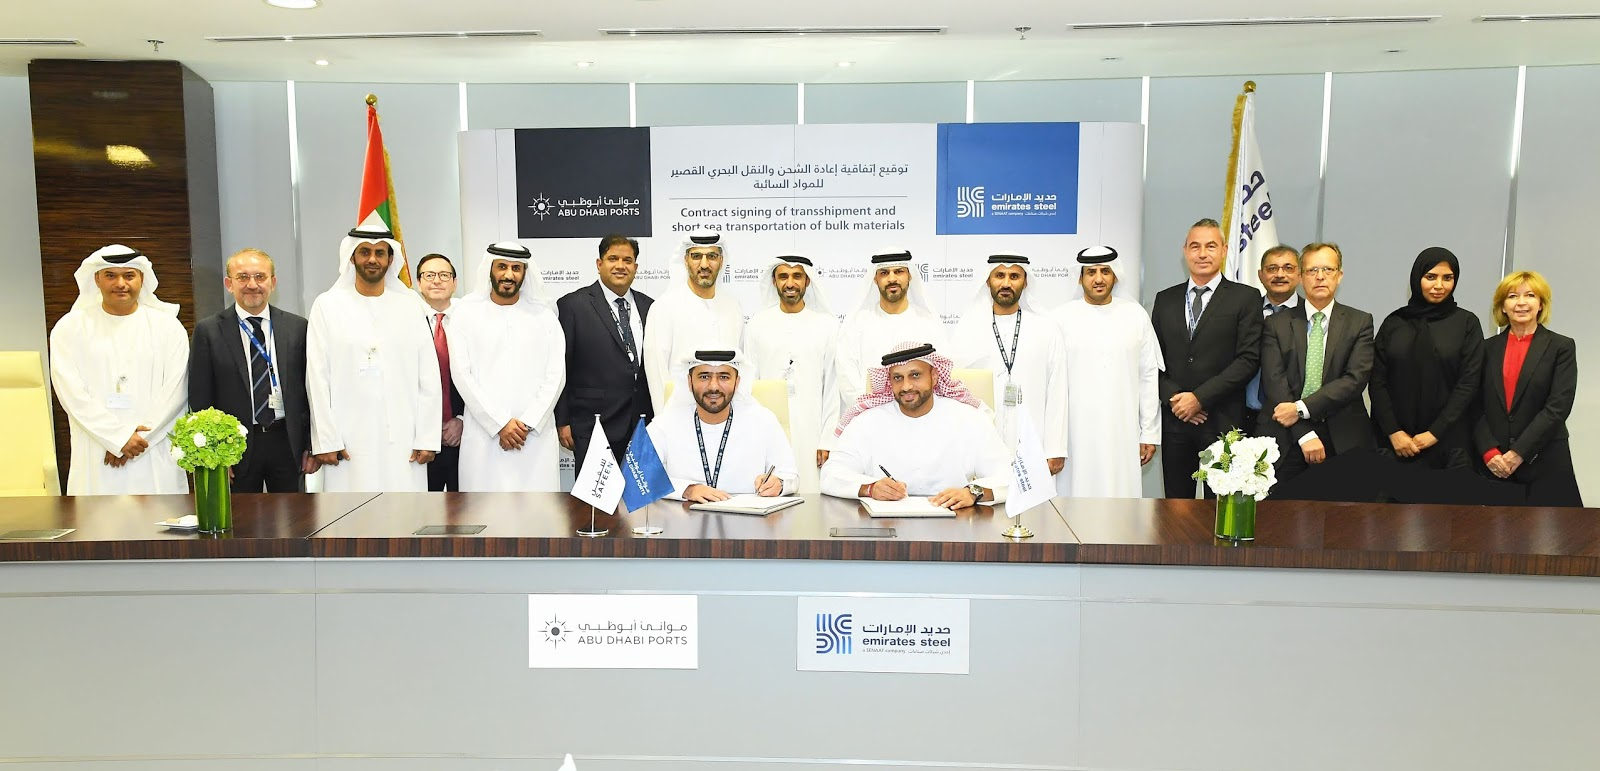 Company News in Egypt: Emirates Steel signs marine services